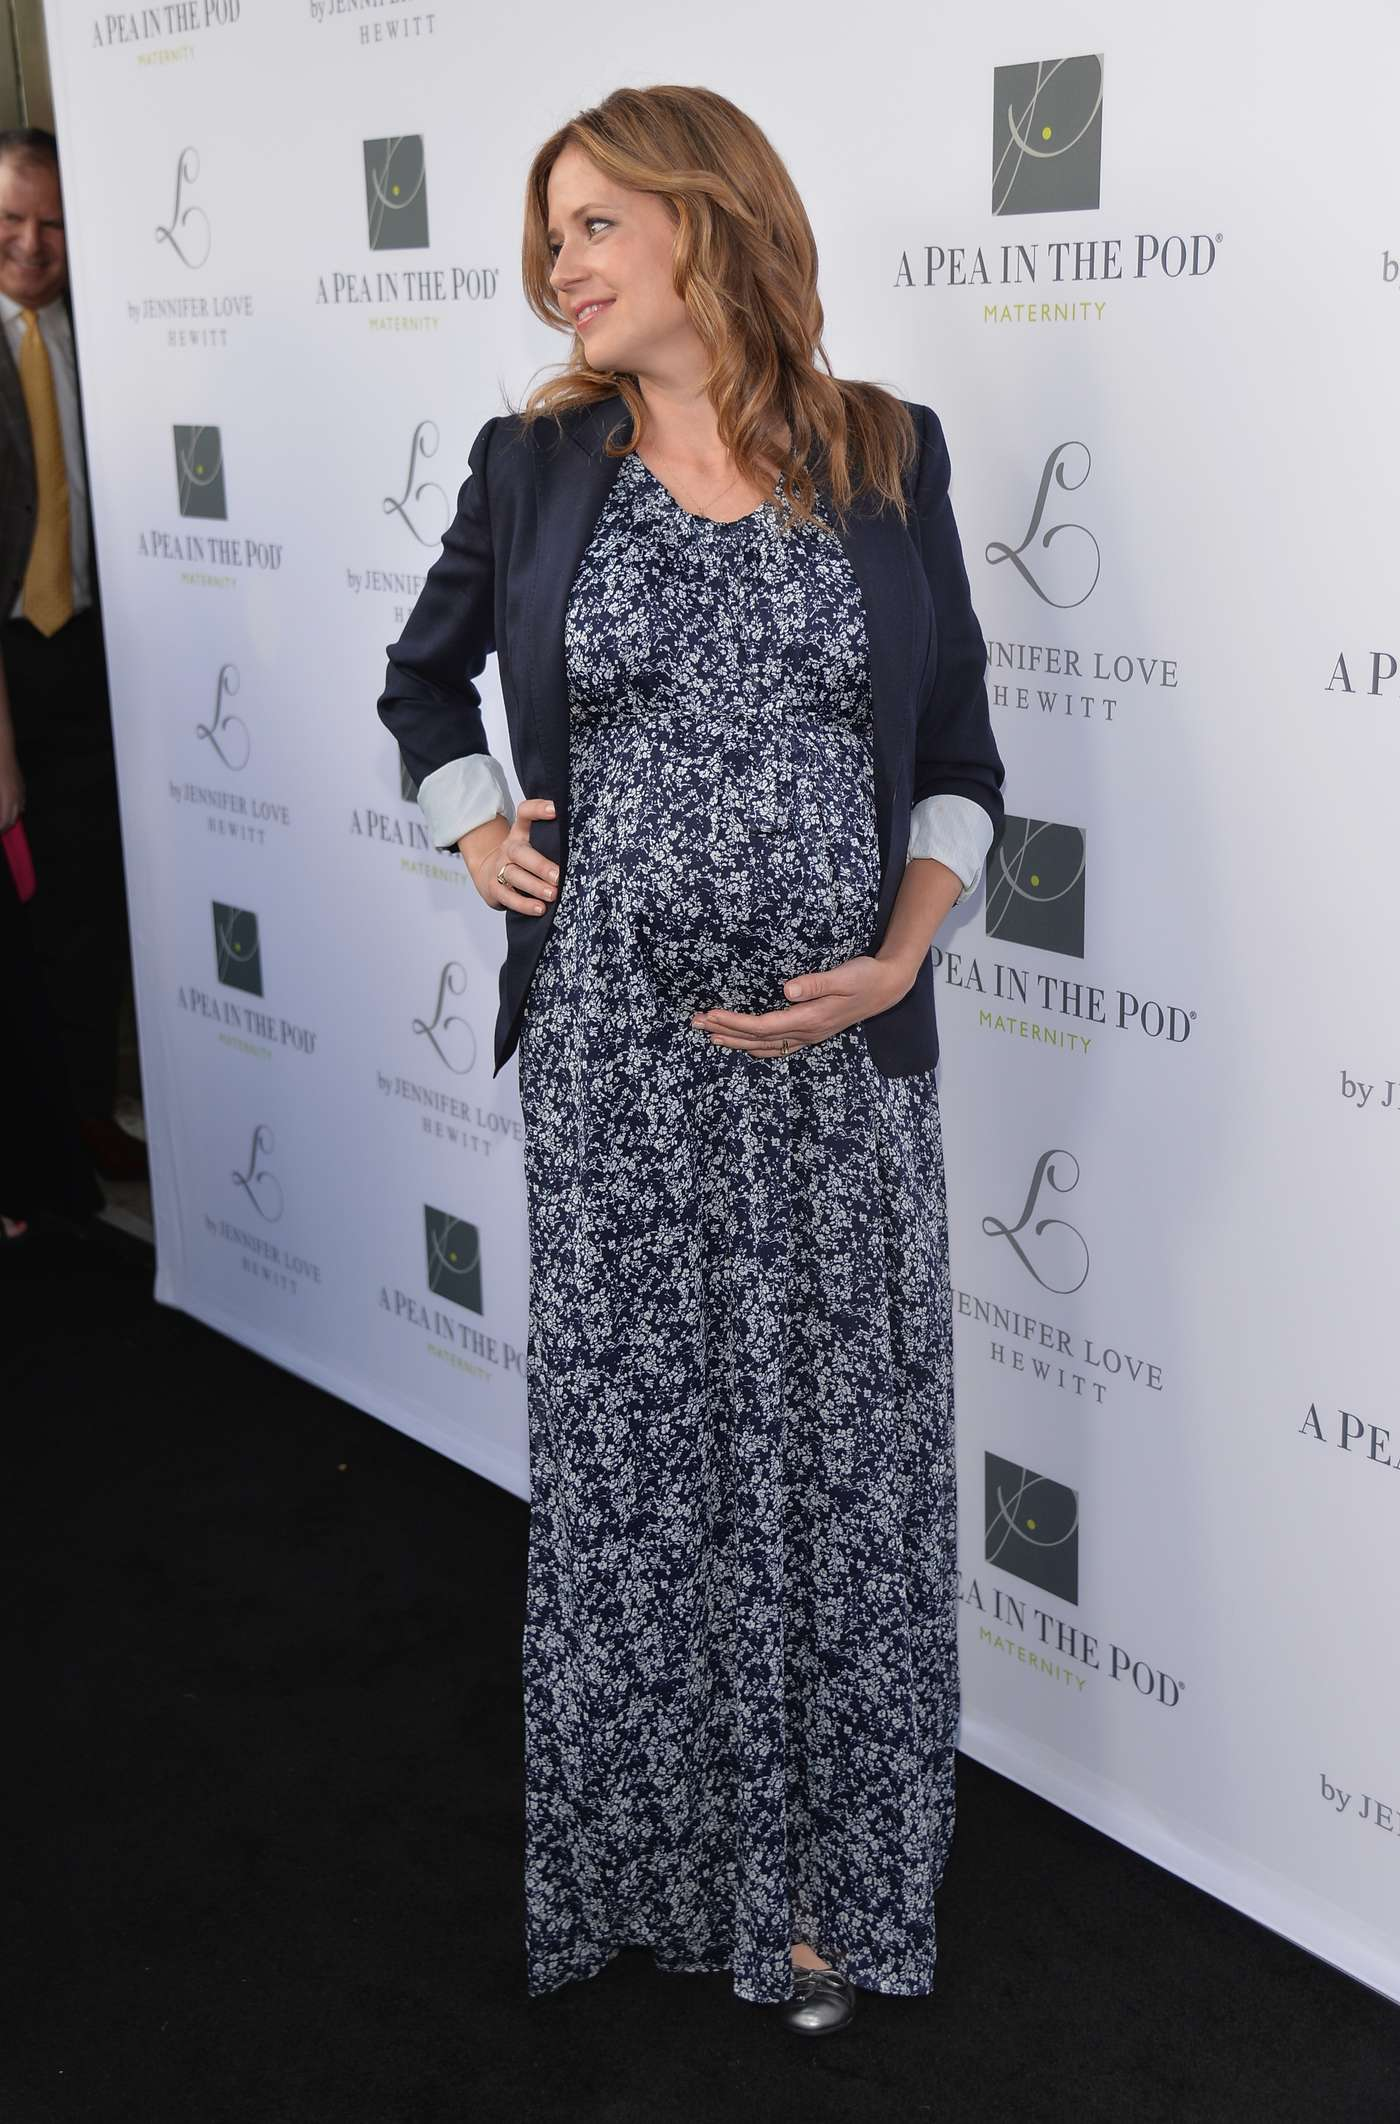 Jenna Fischer A Pea In The Pod L By Jennifer Love Hewitt Launch in Beverly Hills